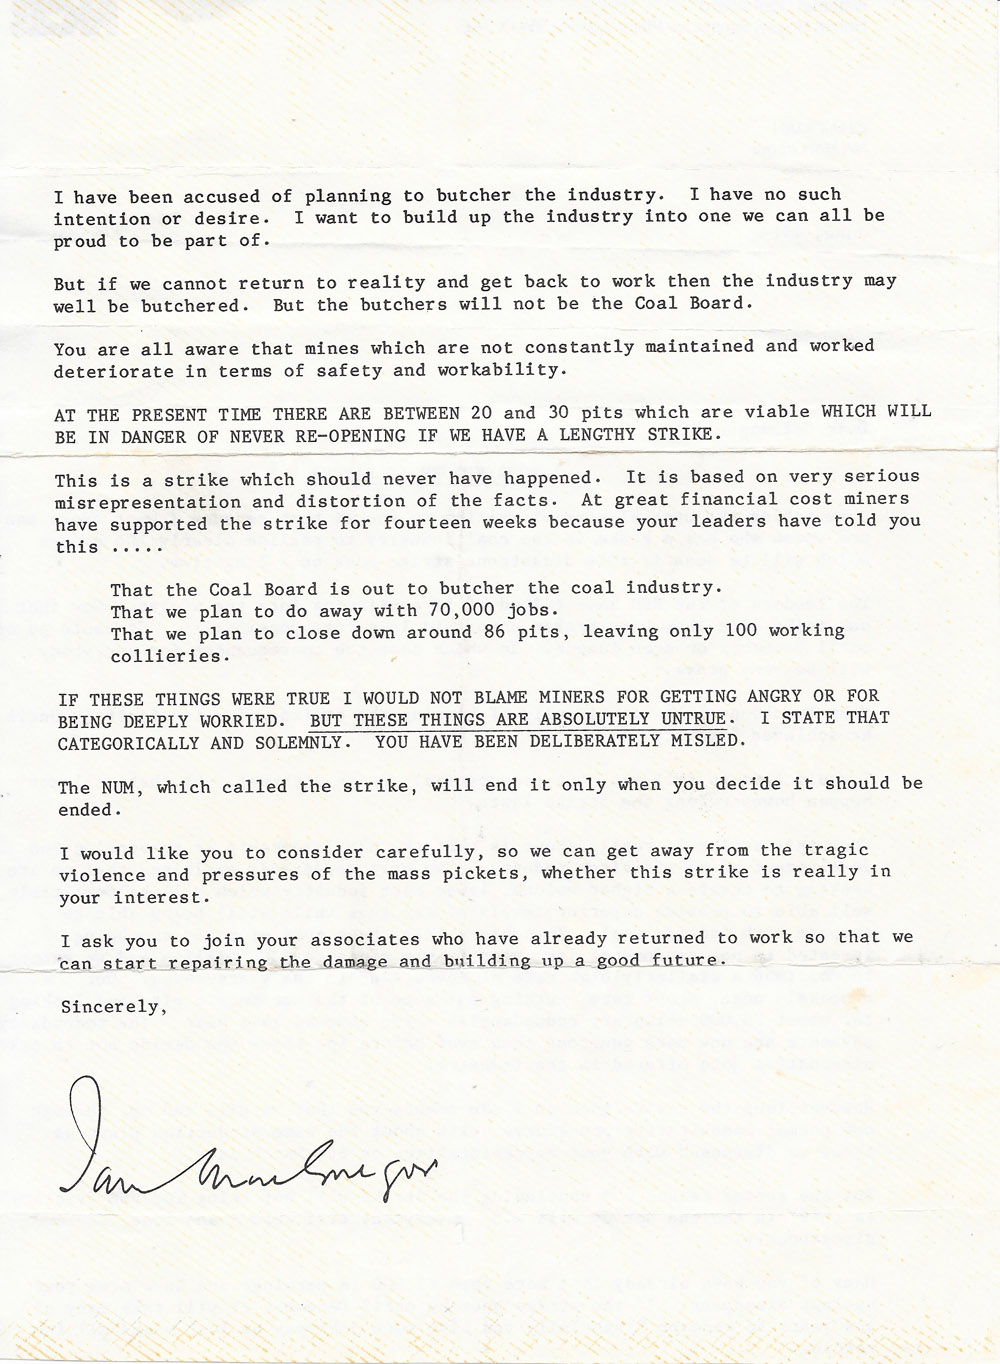 The letter Ian MacGregor, Coal Board Chairman, sent to every striking miner in June 1984. Denying he was going to close 70 pits and butcher the industry.